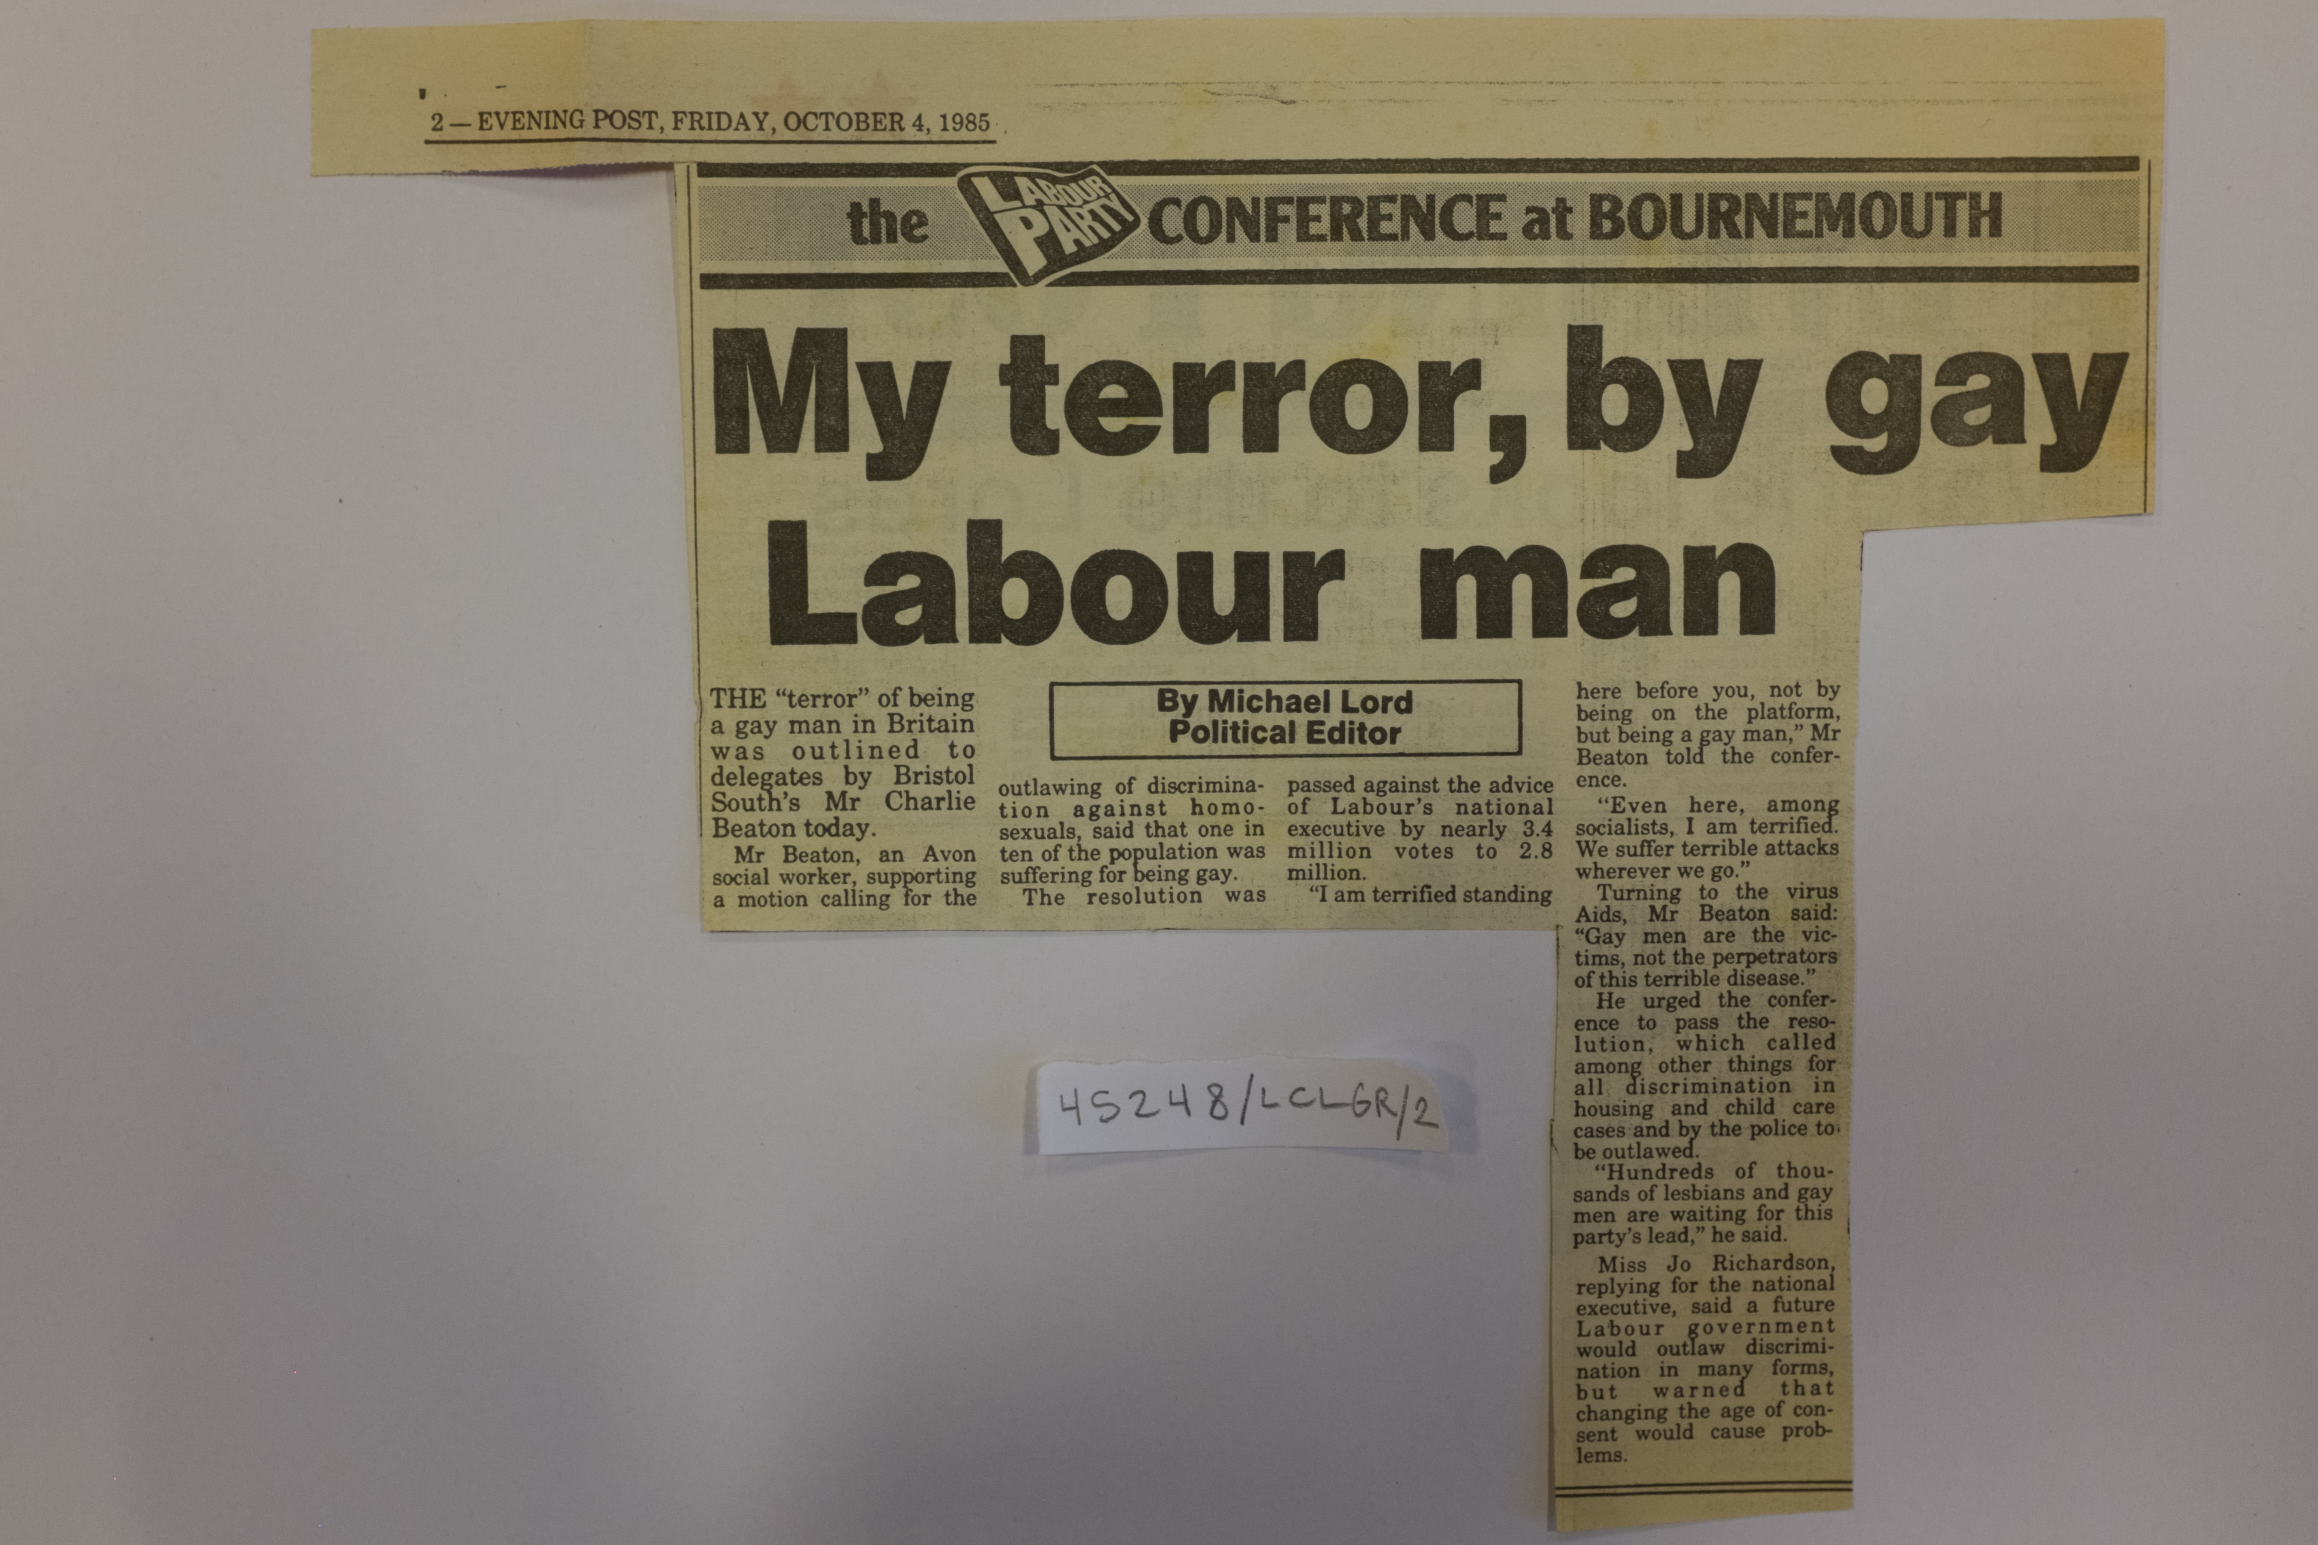 A newspaper article about Charlie Beaton's testimony to the Labour Party Conference